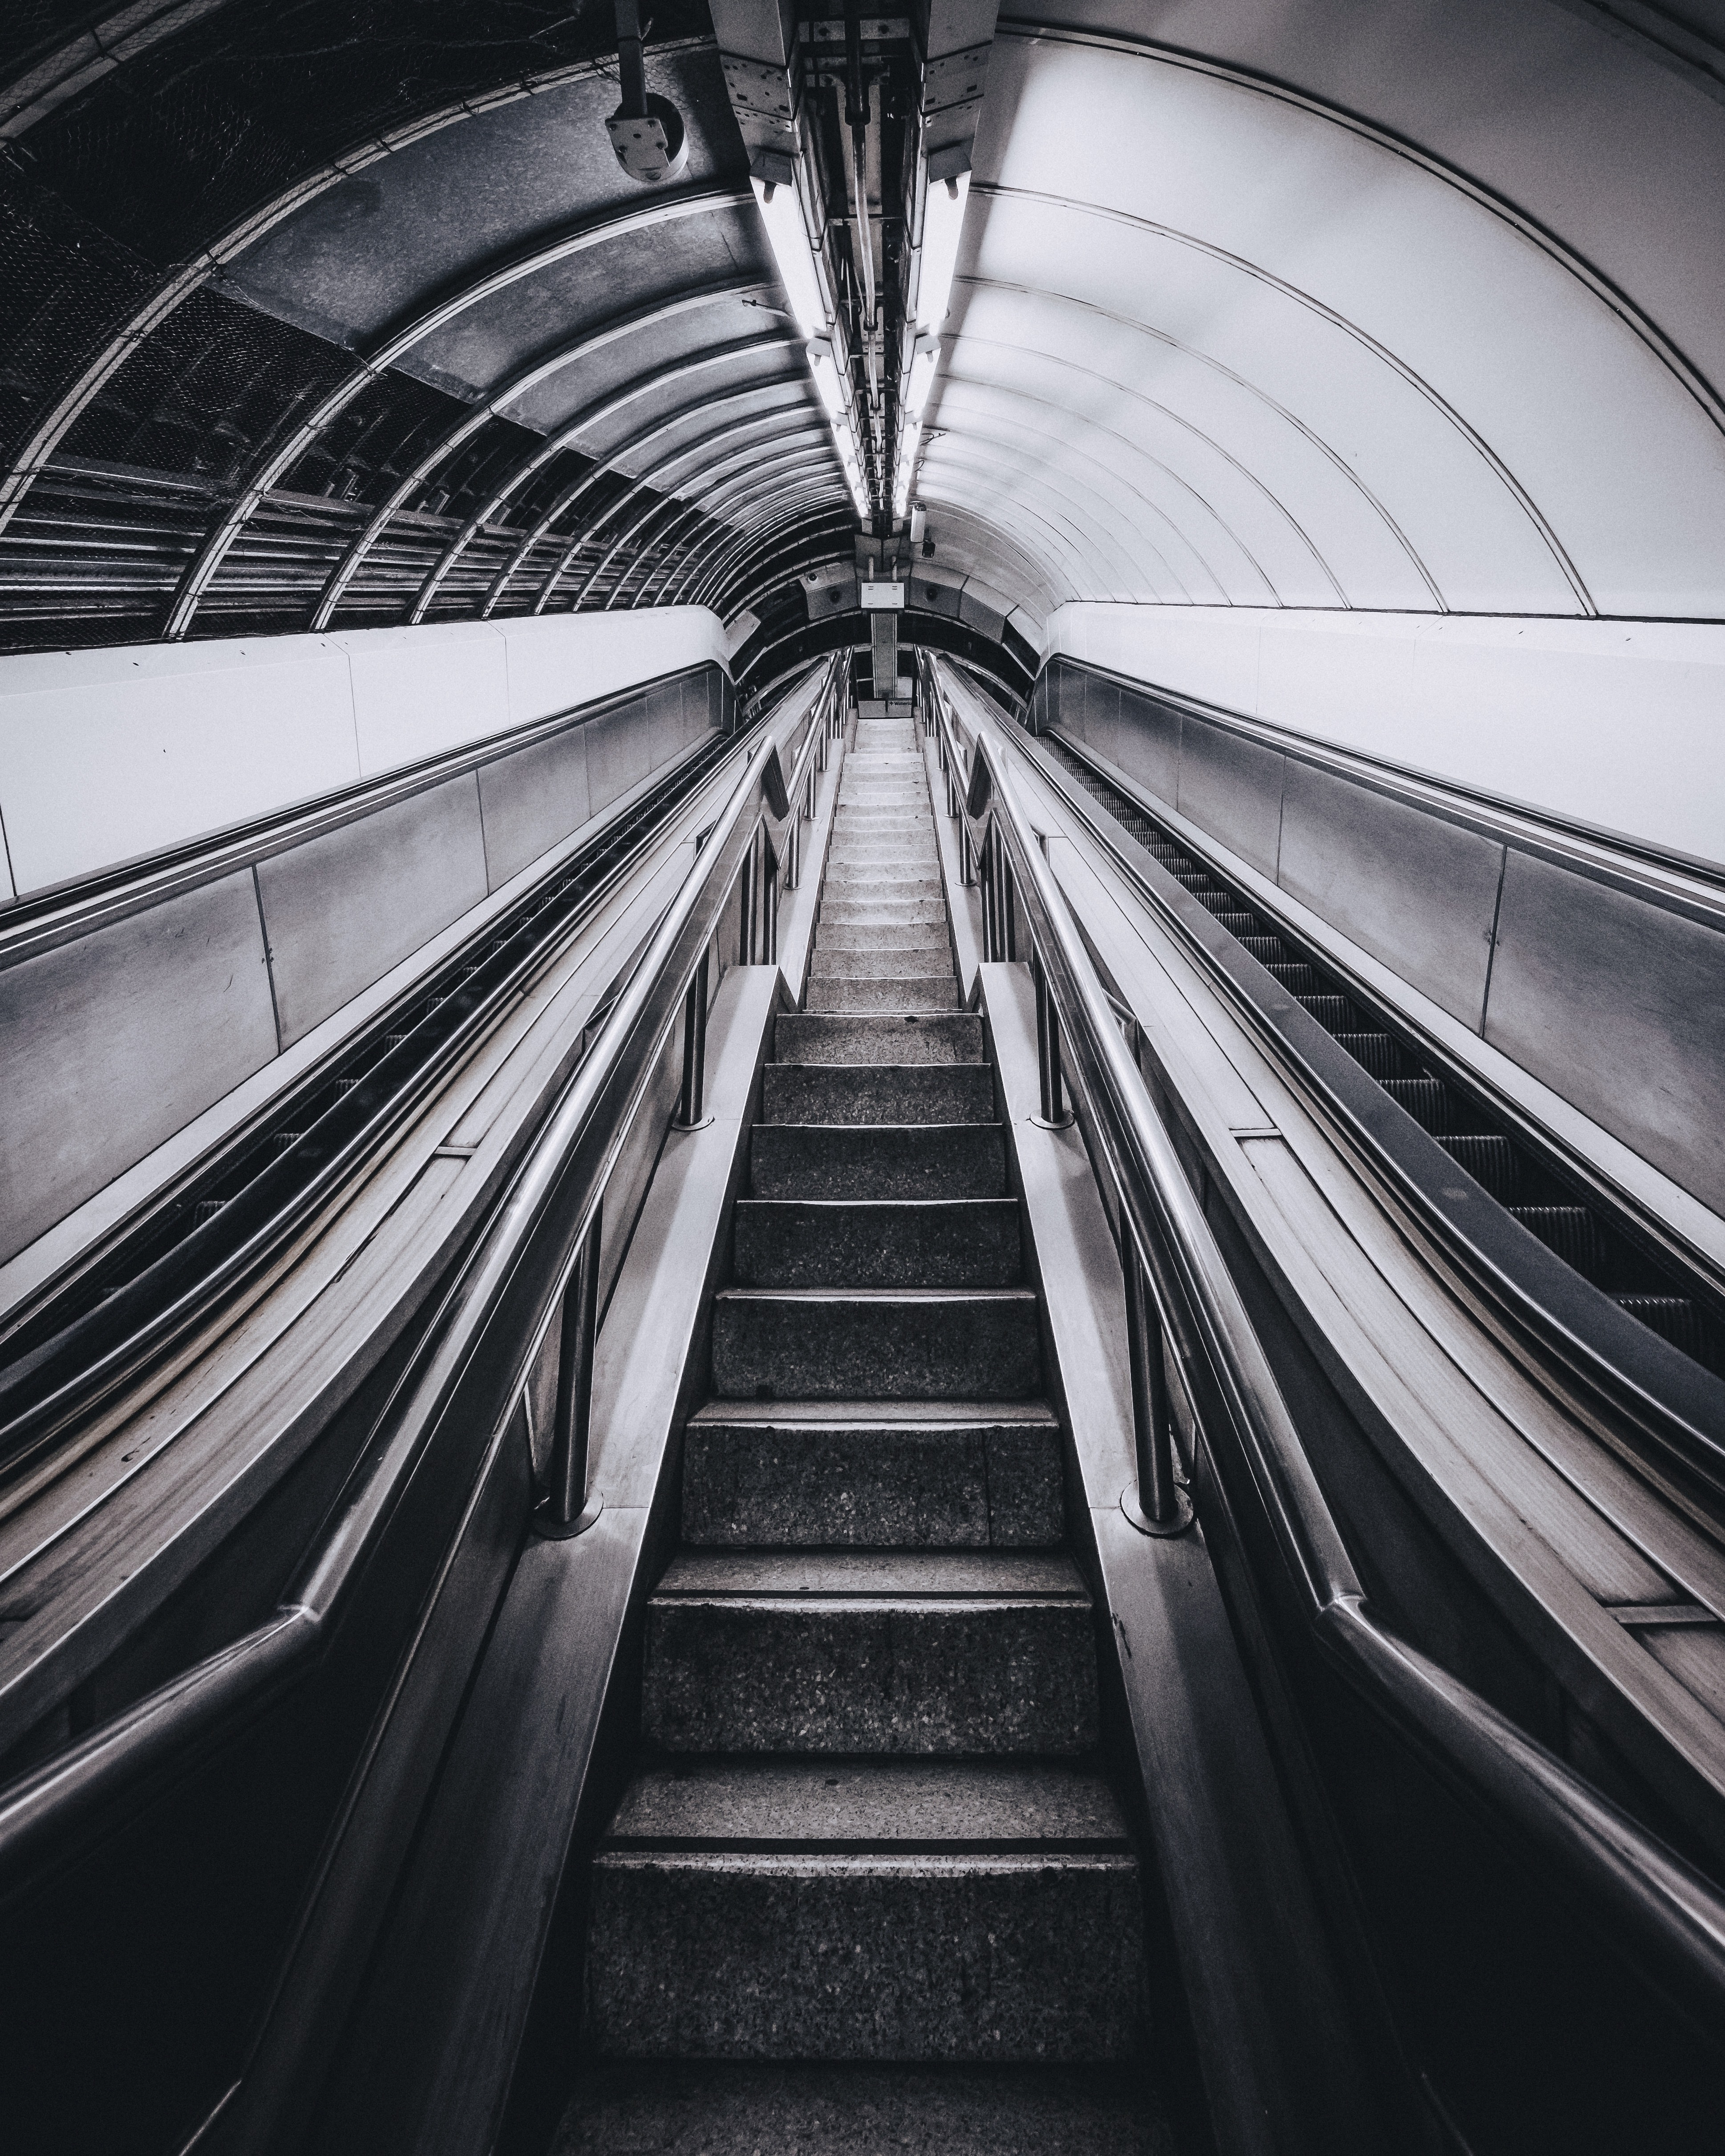 An empty staircase and two escalators in a tunnel in London